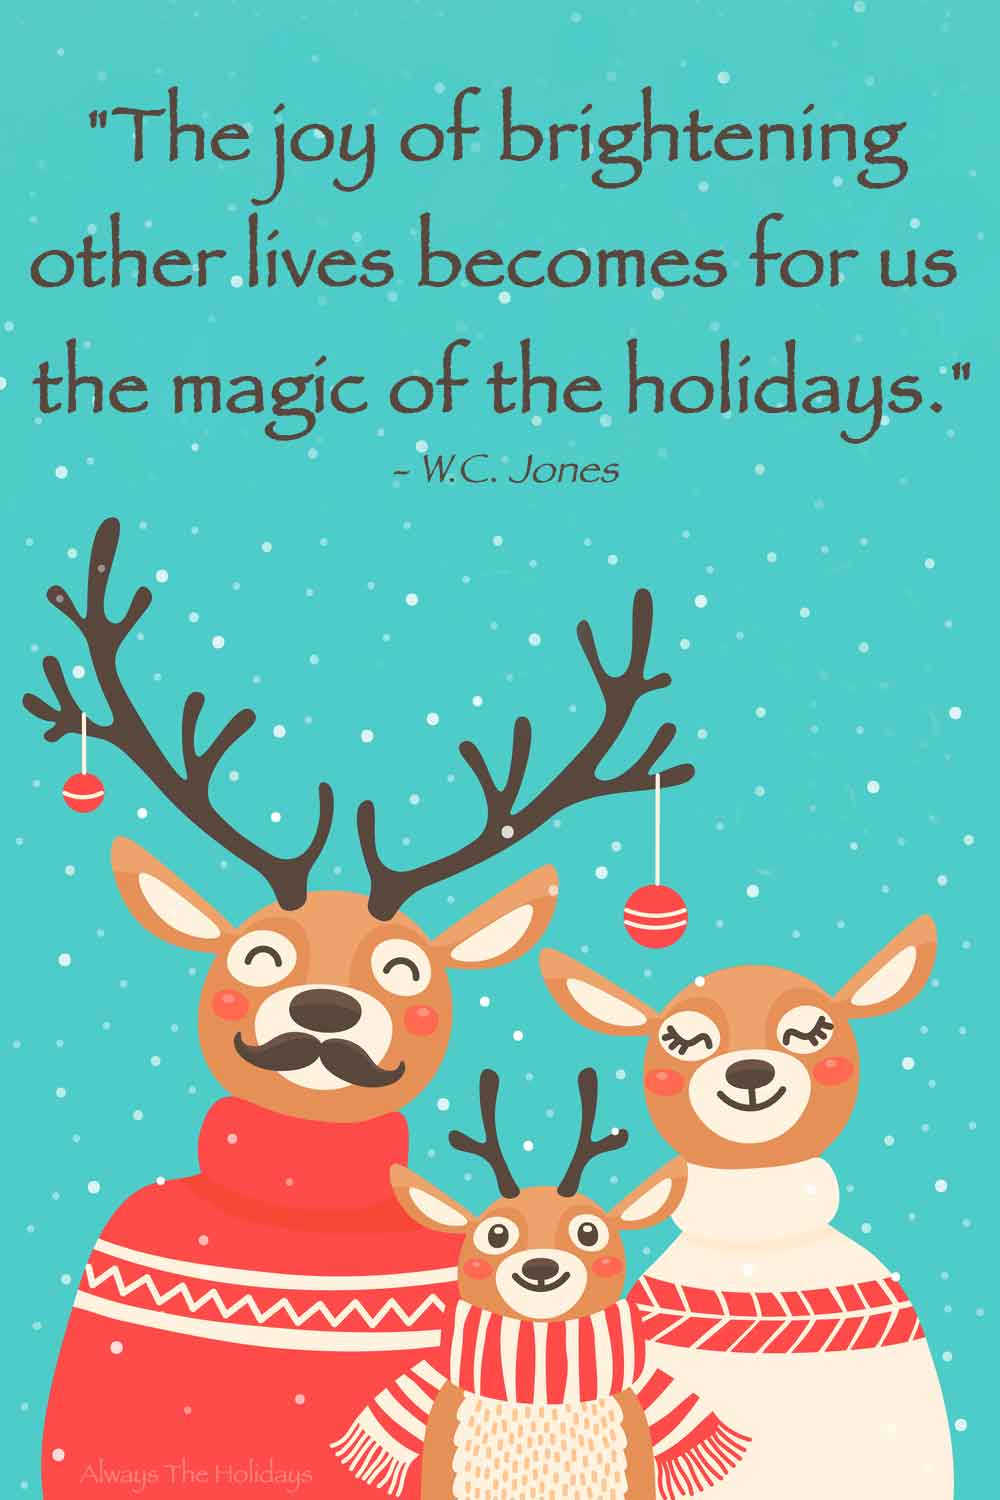 A cute deer family wearing Christmas sweaters with an inspirational Christmas message above their heads.